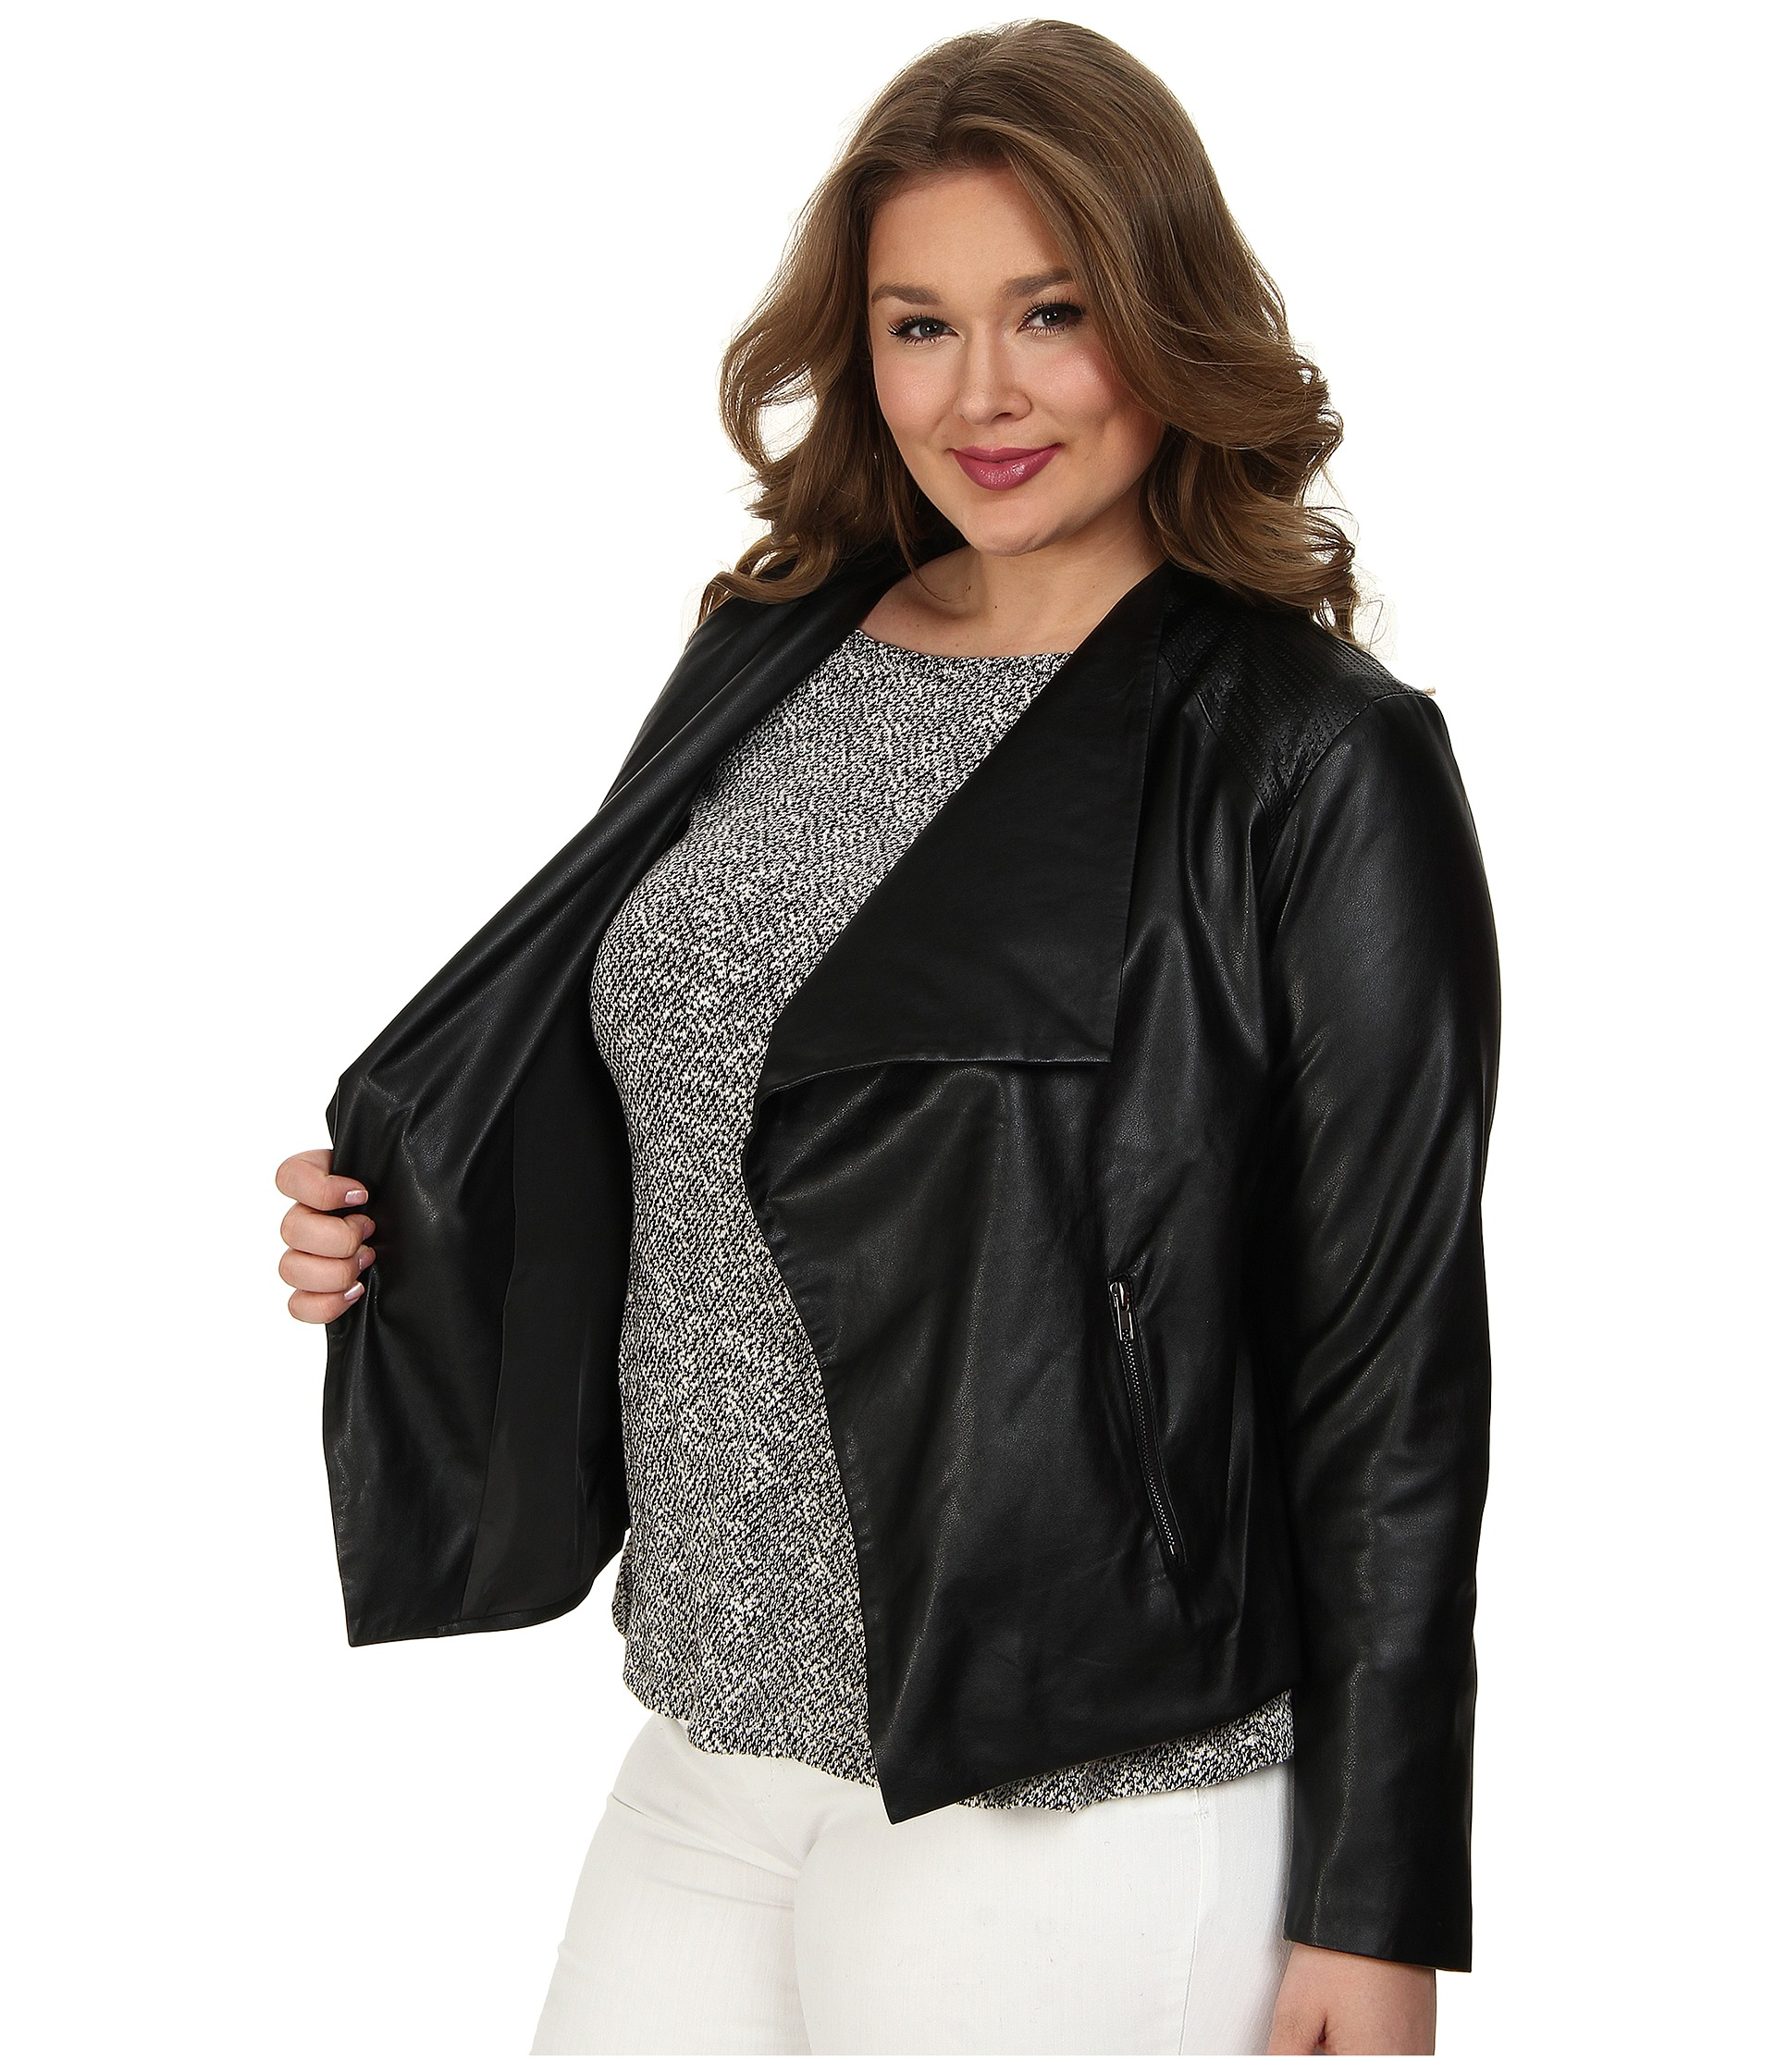 Plus size clothing stores las vegas. Clothing stores